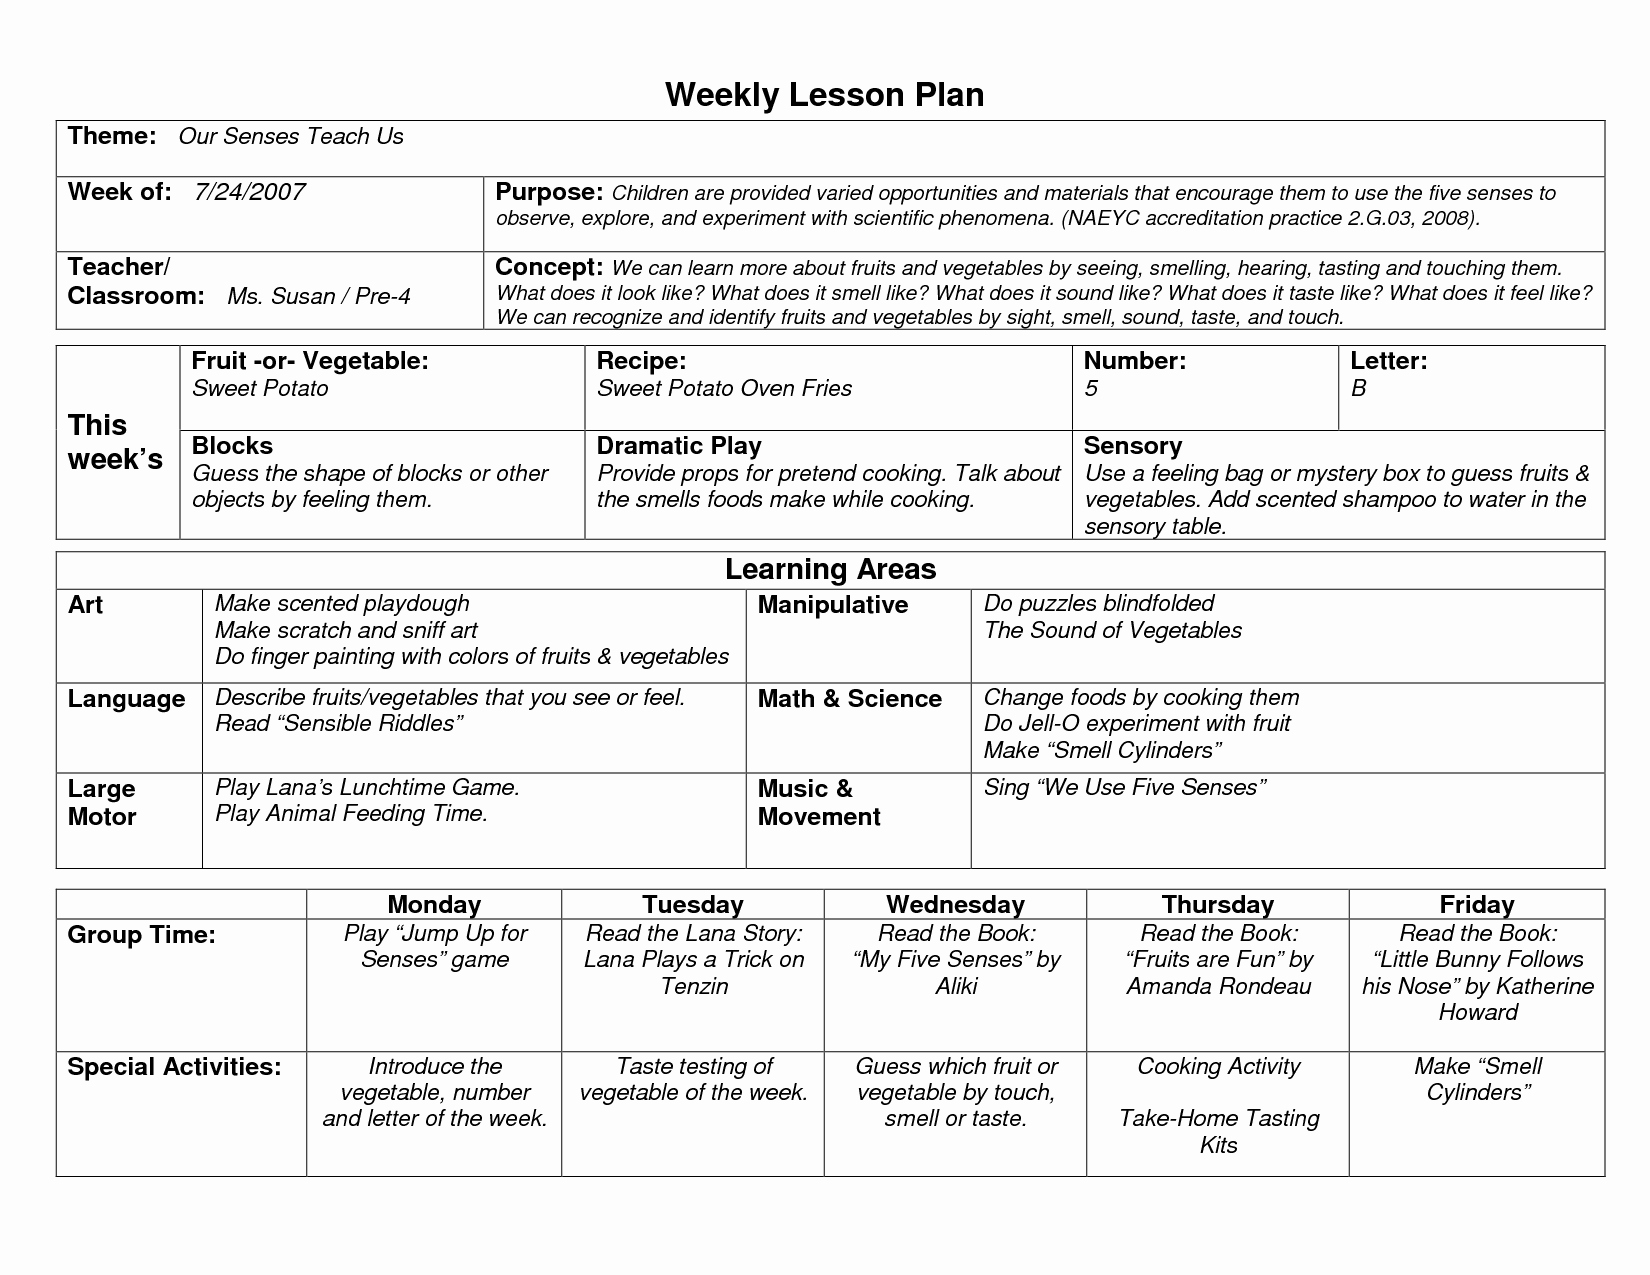 Weekly Lesson Plan Templates Luxury Naeyc Lesson Plan Template for Preschool